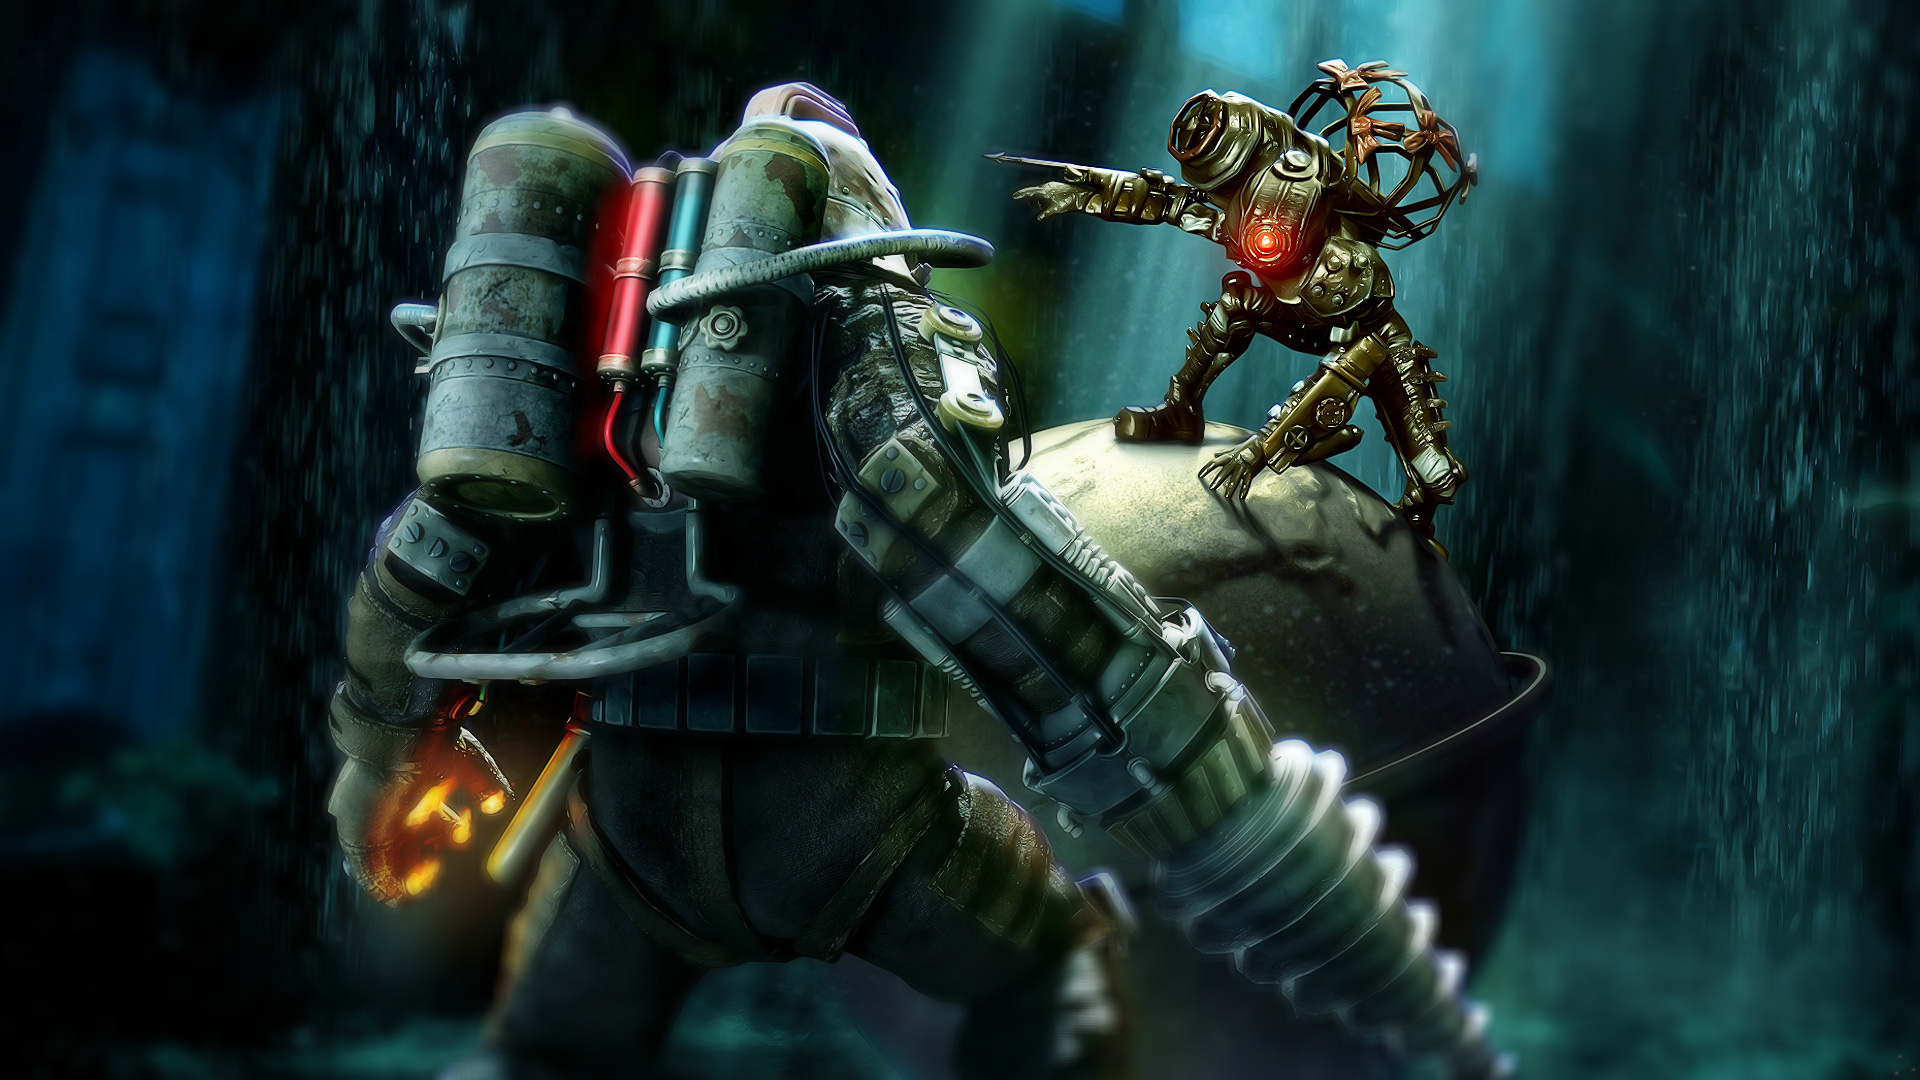 Bioshock Game 503.74 Kb